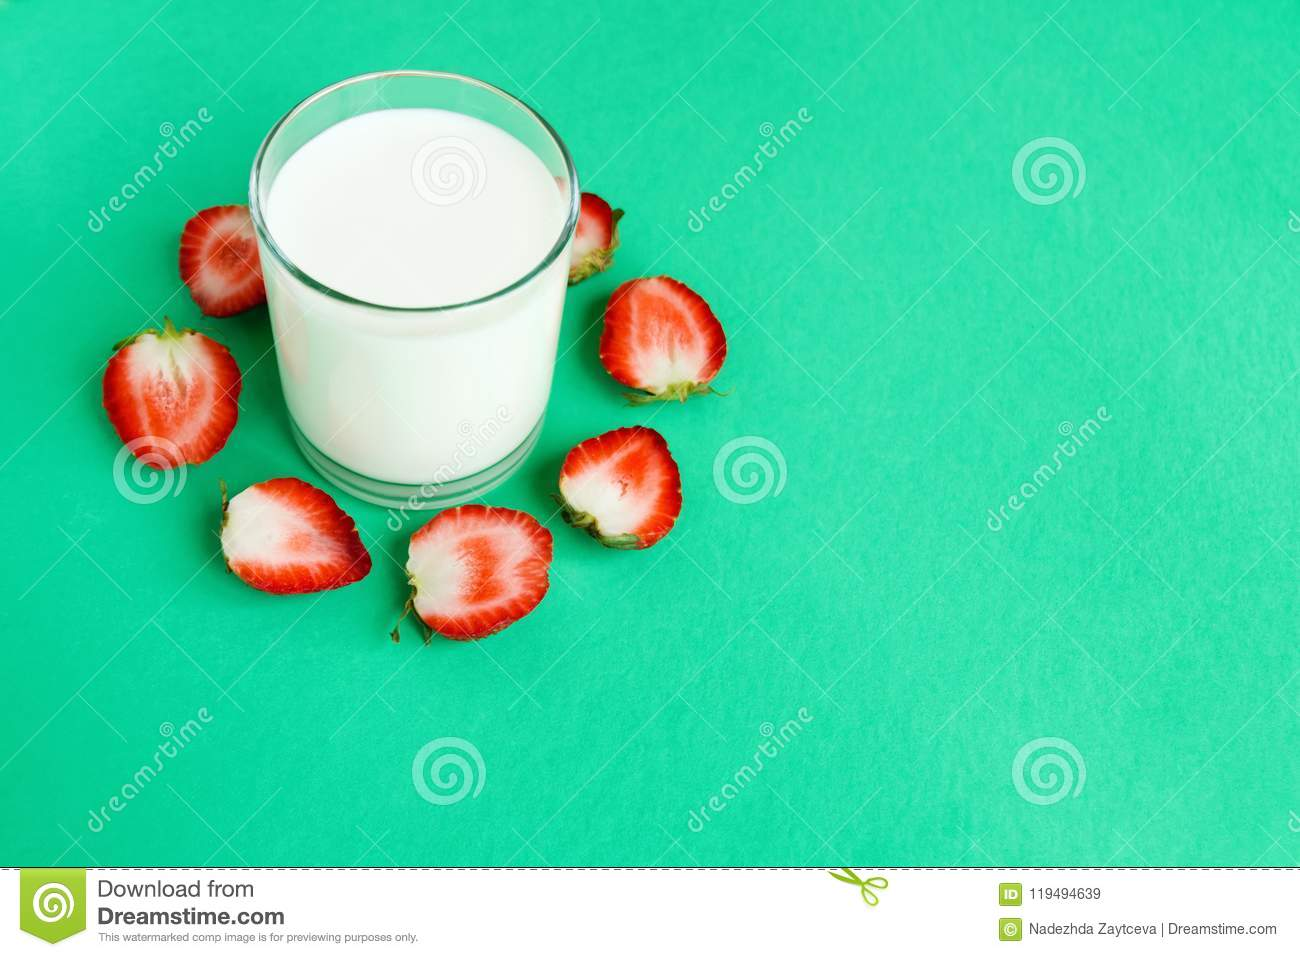 Glass of milk and halves of strawberry around on a turquoise background, top view.